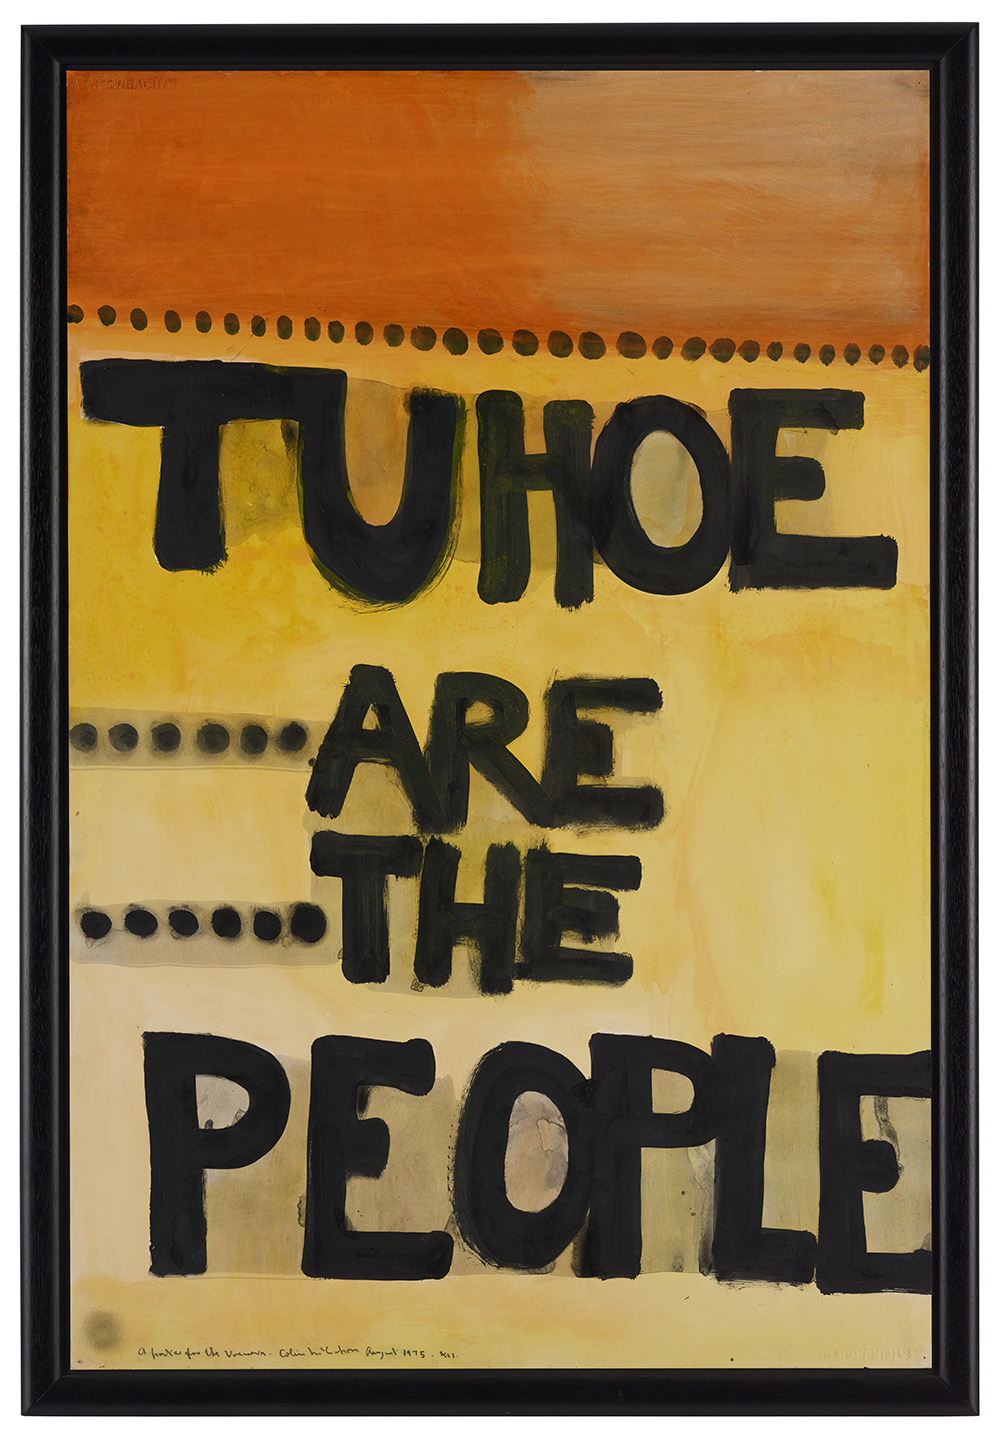 Painting featuring an orange panel taking up the top quarter, yellow taking up the bottom three-quarters, and the words 'Tuhoe are the people' written in black